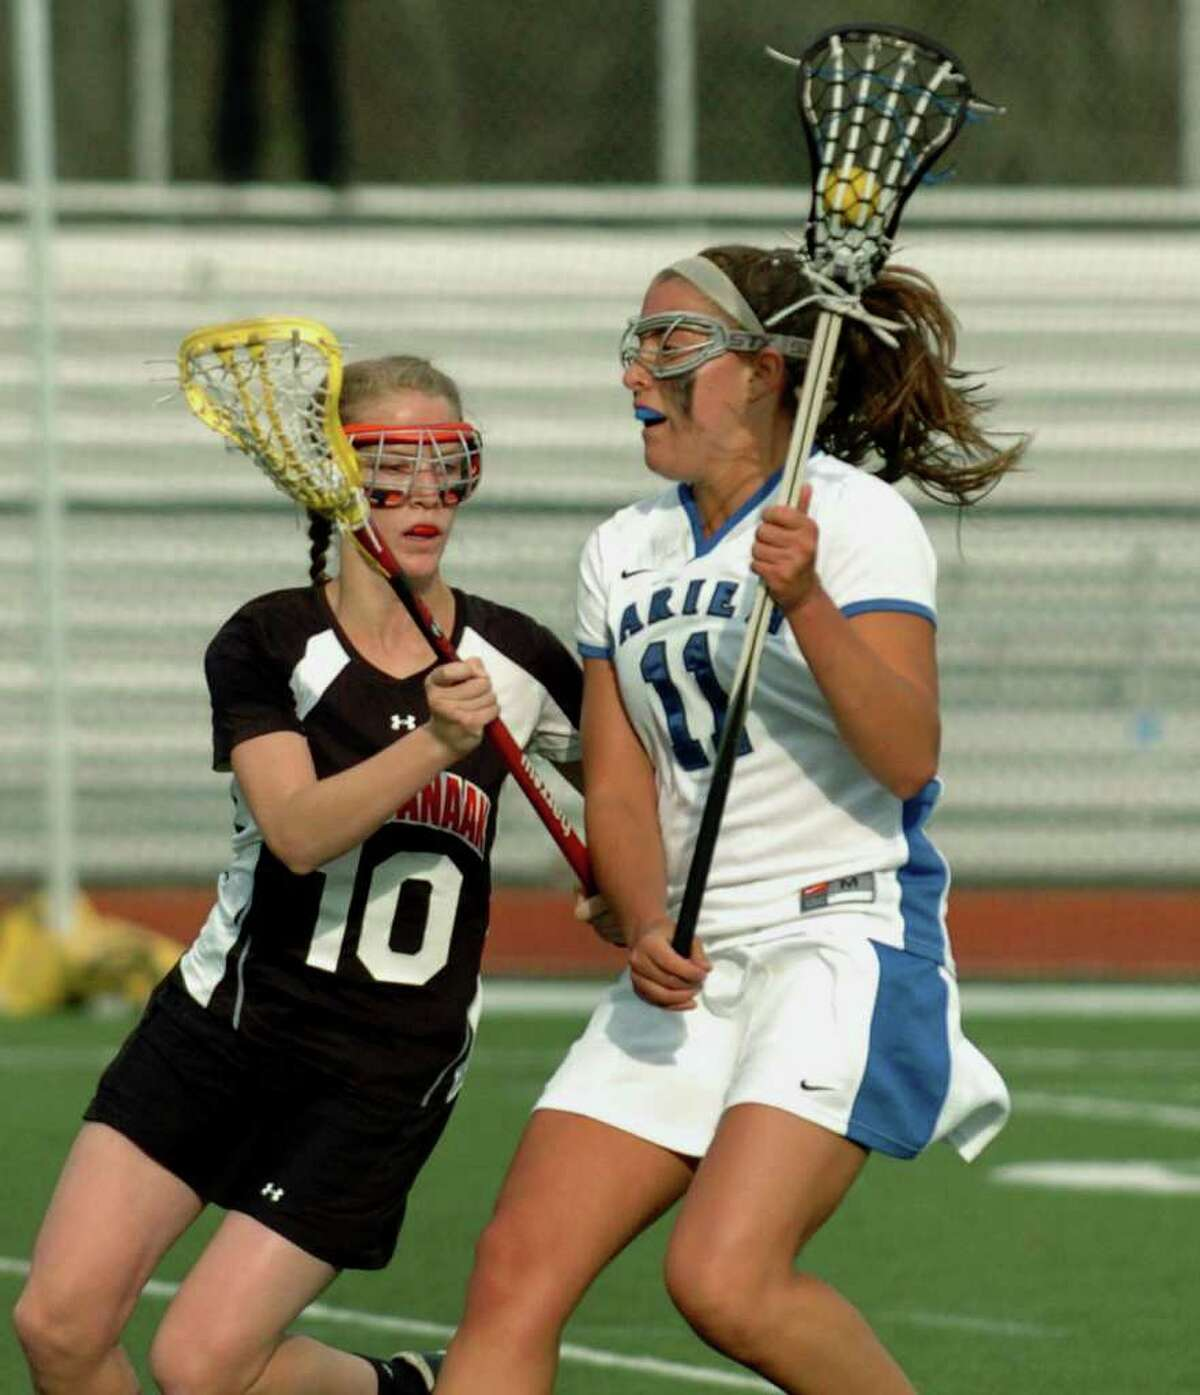 New Canaan's #11 Liz Detour works to get around Darien's #10 Ellie Bullit, during Class M title lacrosse action in Darien, Conn. on Friday April 09, 2010. New Canaan lost to Darien 12-7.